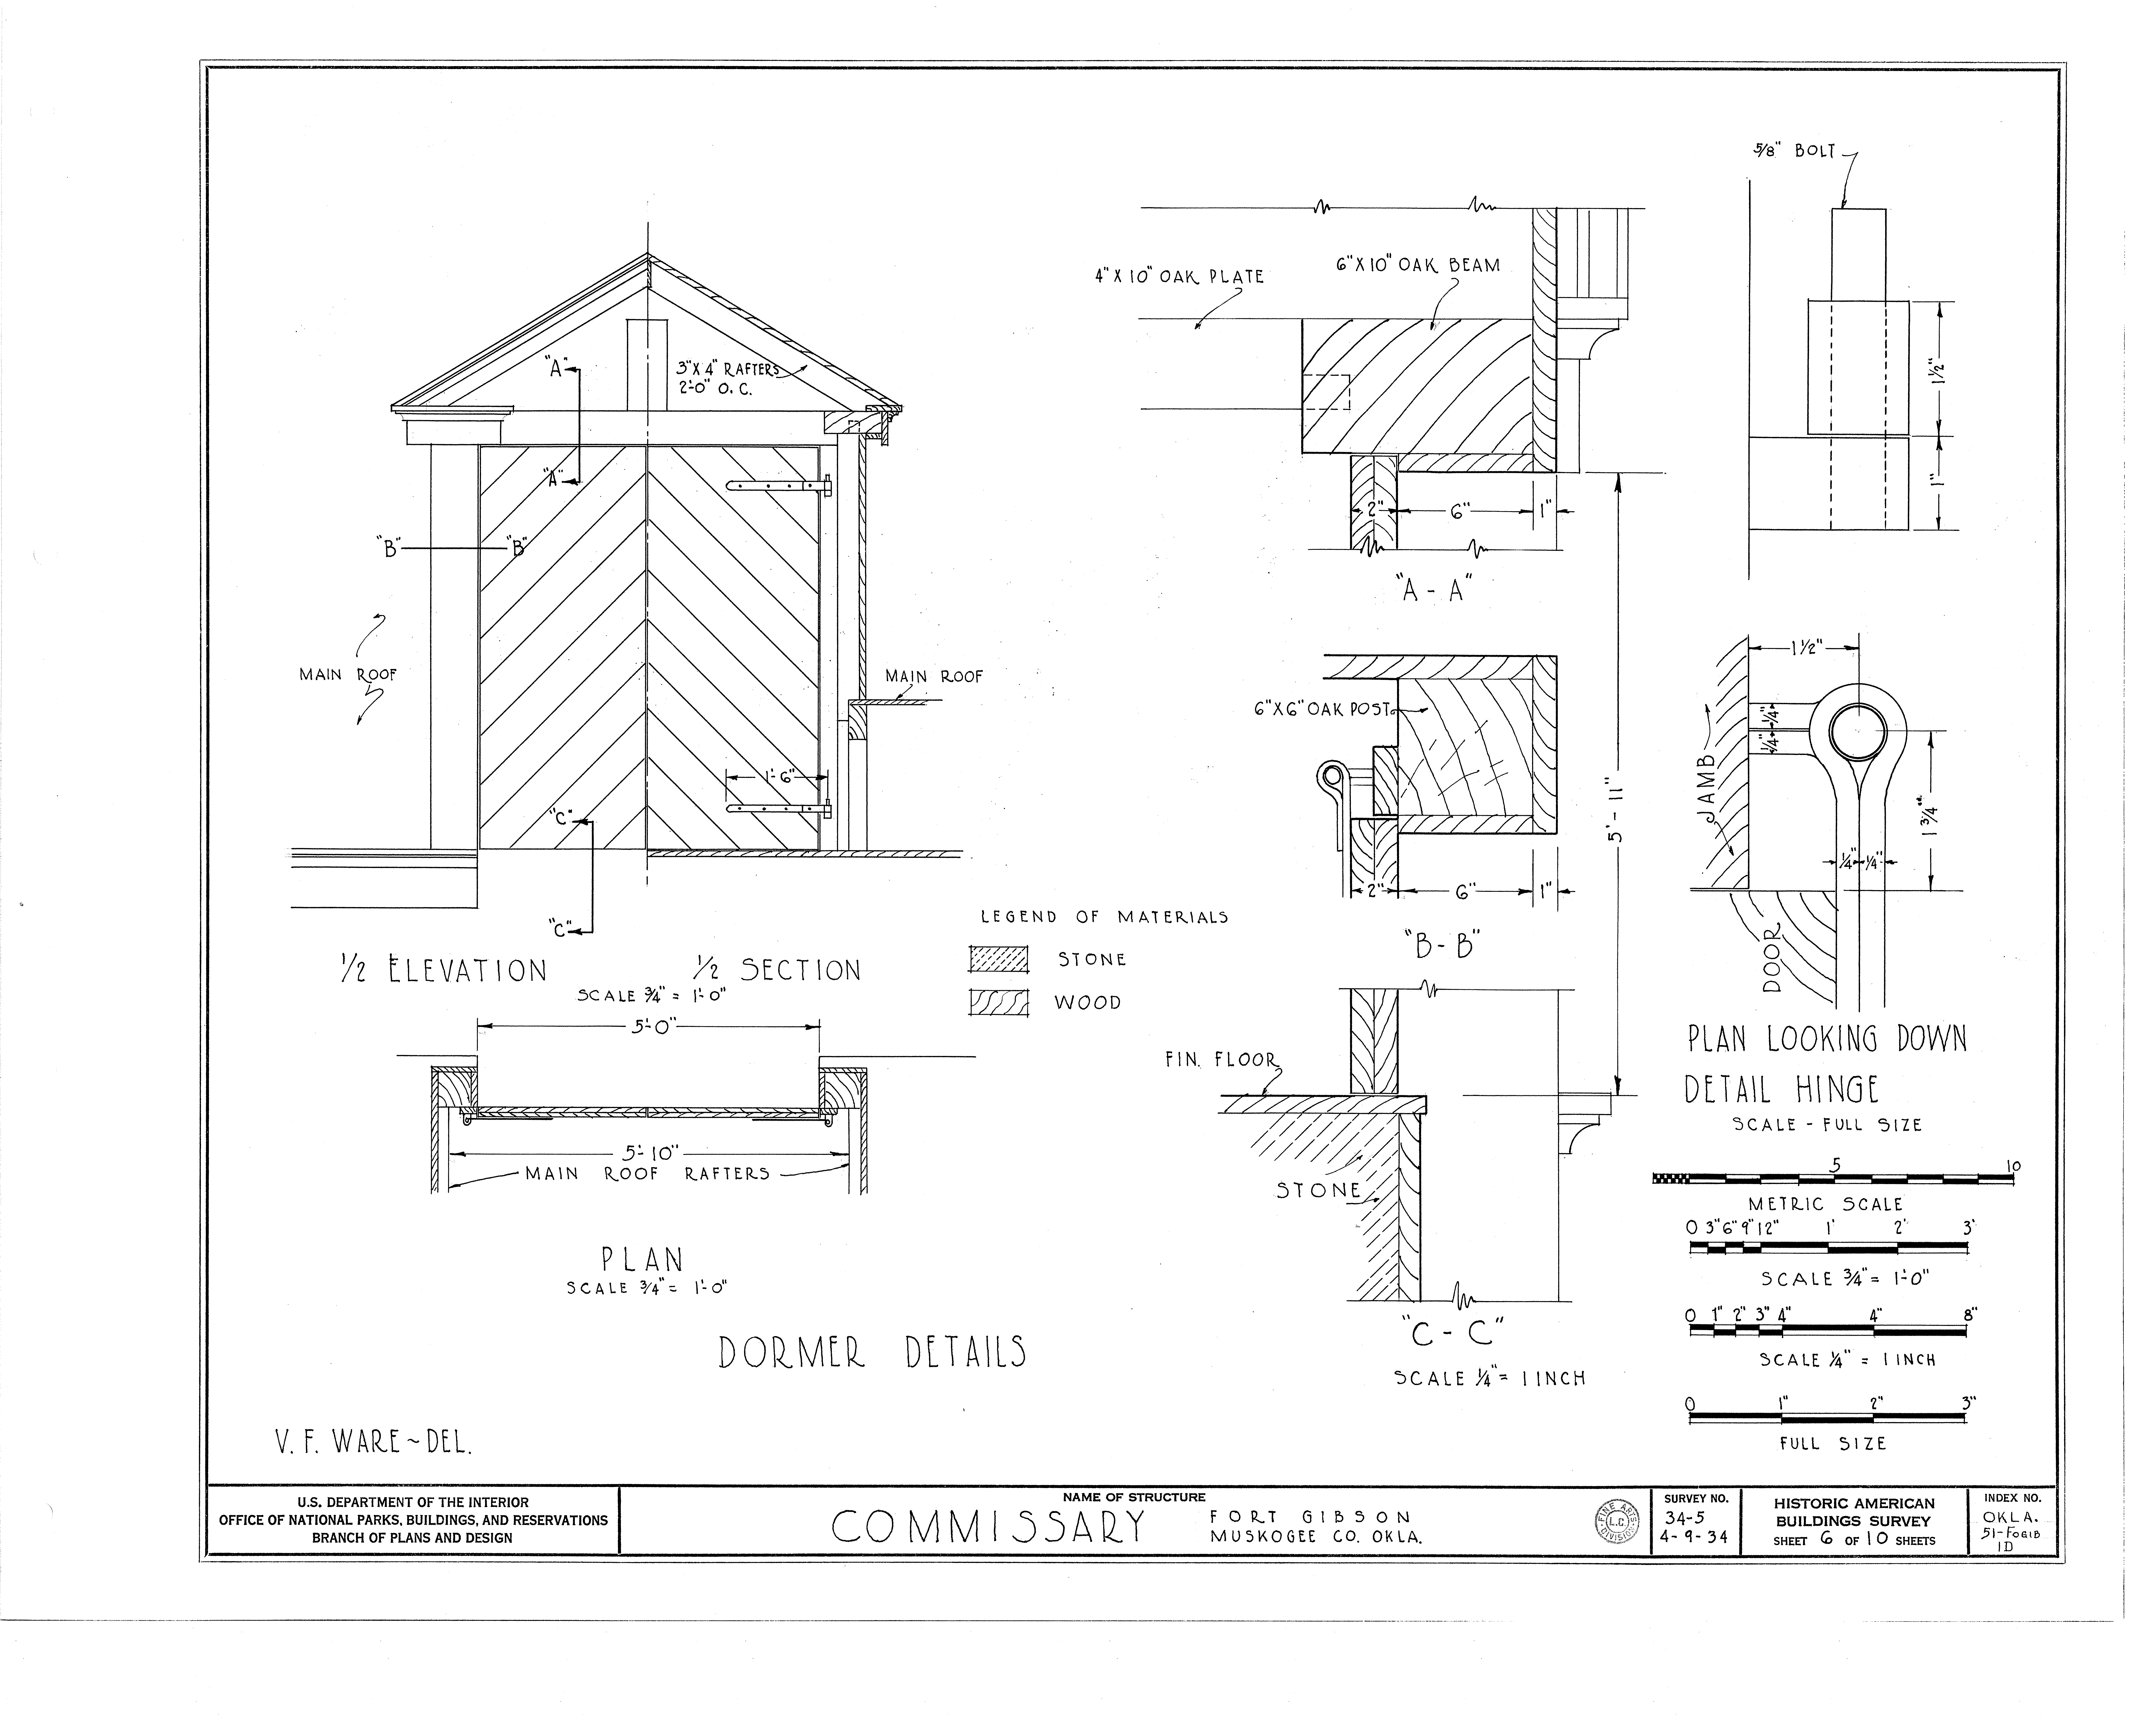 File:Fort Gibson, Commissary Building, Garrison Avenue, Fort Gibson on building mock up, building terminology diagram, building plan diagram, building layout diagram, building block diagram, building connection diagram, building architecture diagram, building construction diagram, build a house diagram, building placement diagram, building component diagram, building parts diagram, building network diagram, building piping diagram, building concept diagram, building wiring diagram, building program diagram, building structure diagrams, house building diagram, building electrical single line diagram,